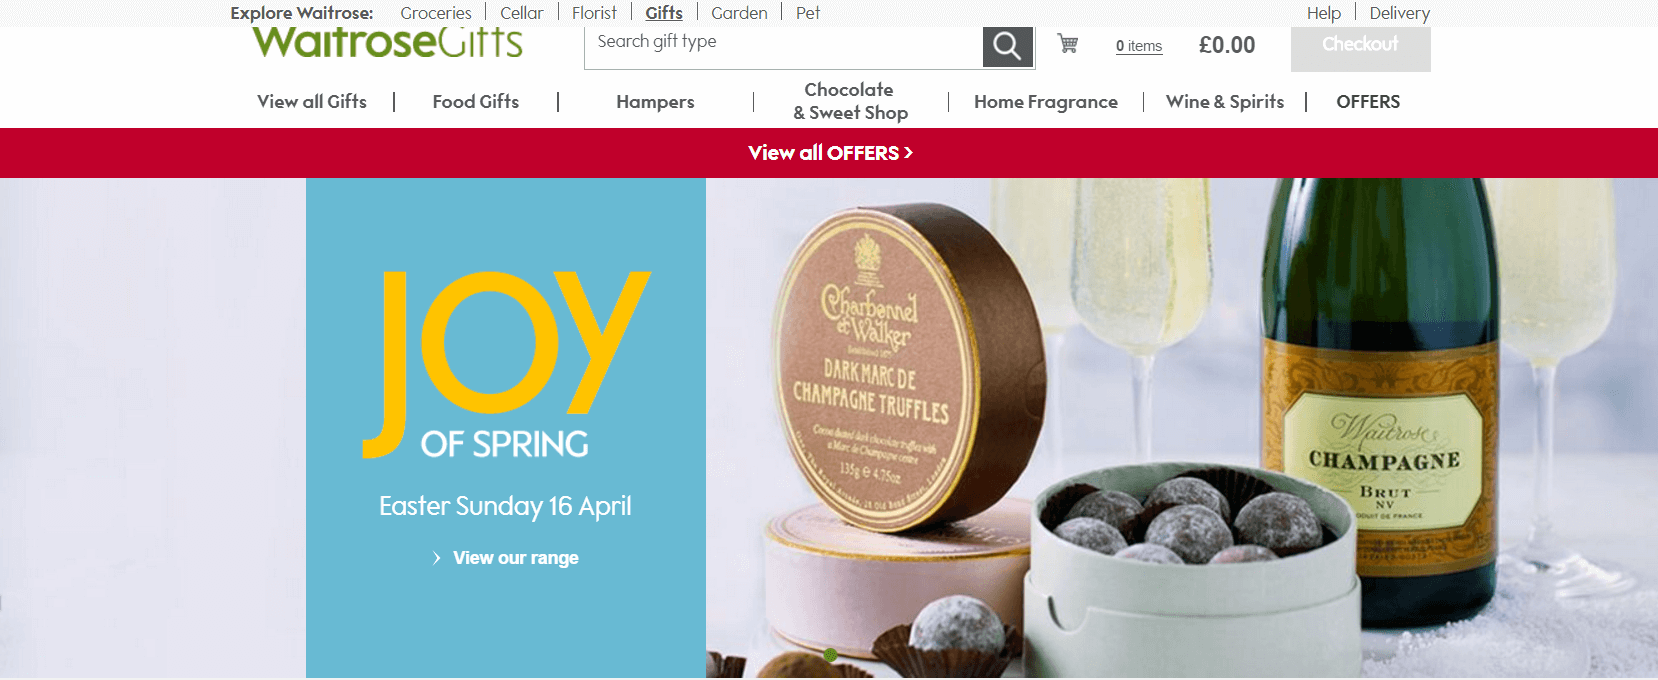 Waitrose gifts voucher codes discounts march 2018 my voucher codes more information about waitrose gifts negle Gallery